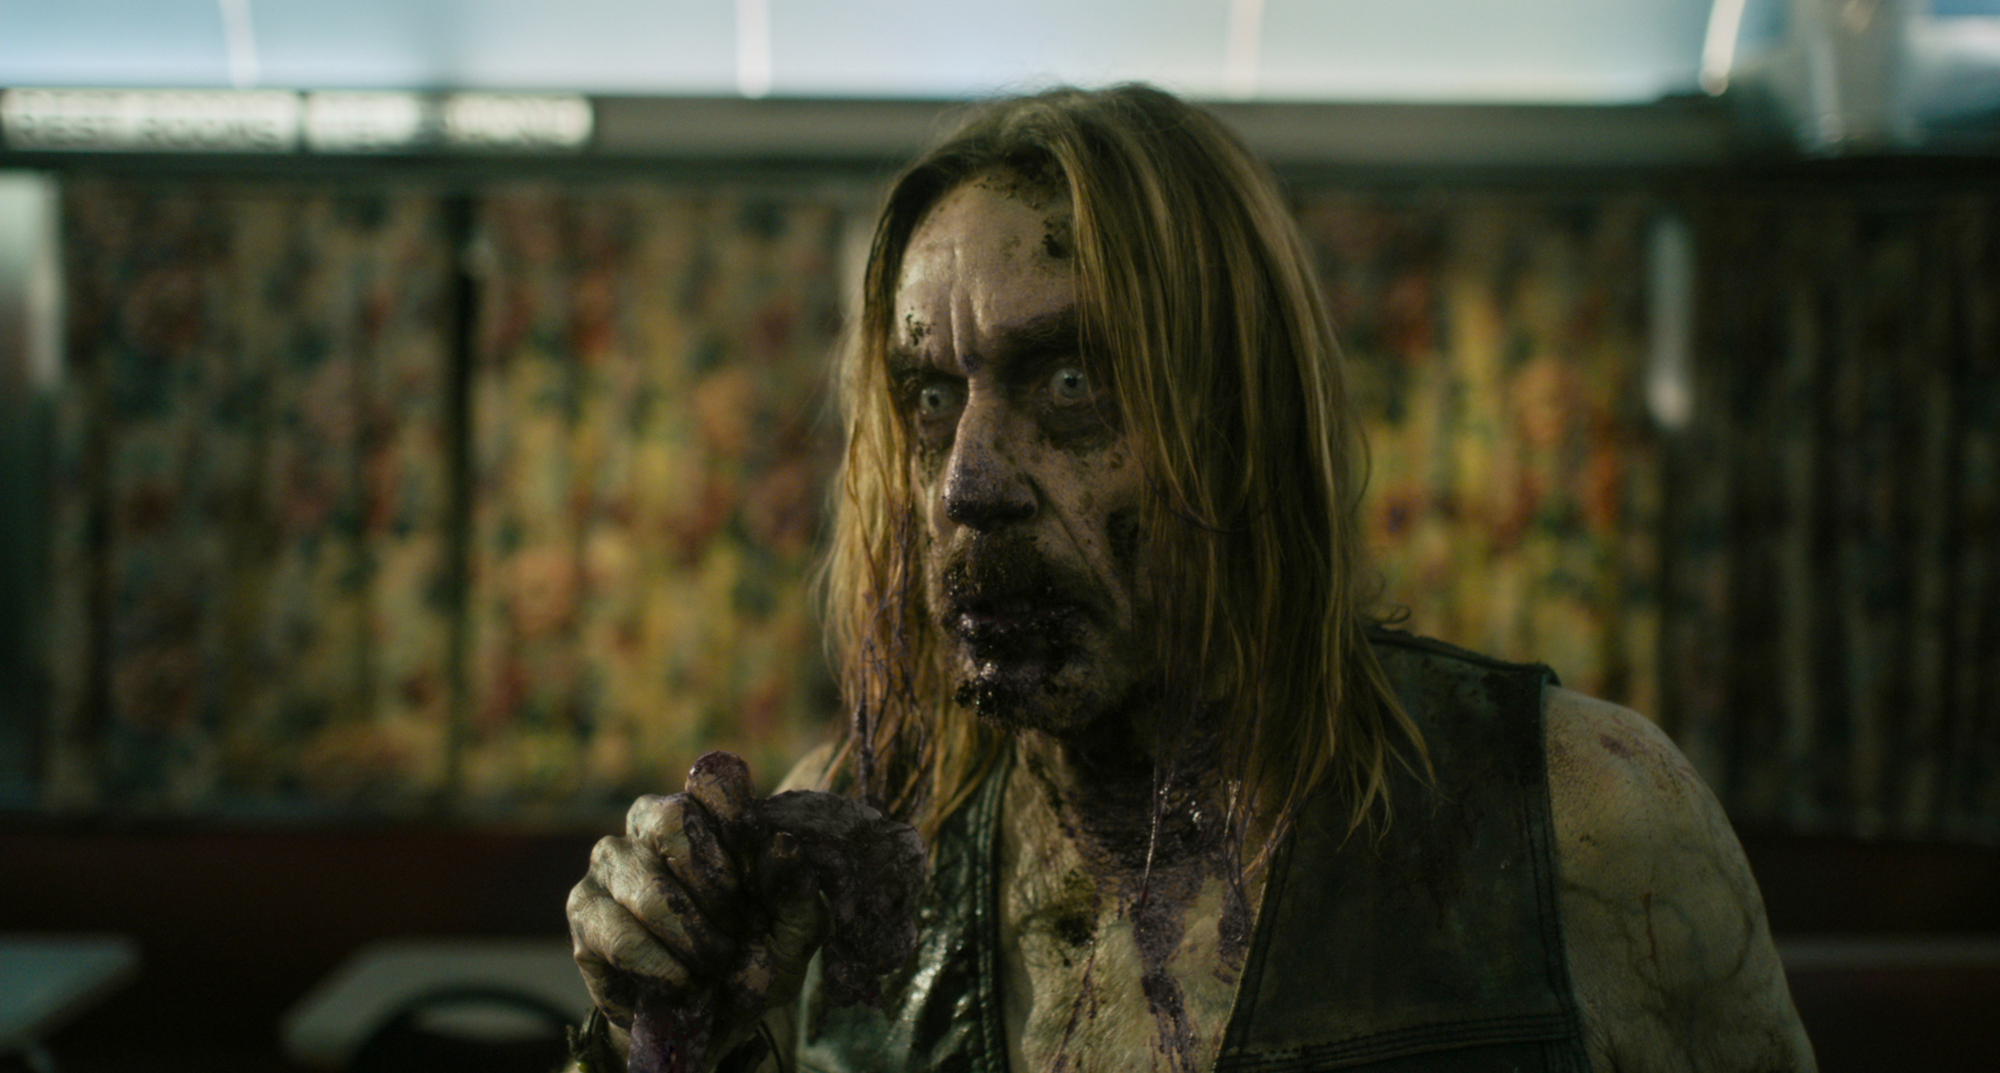 """Iggy Pop stars as """"Male Coffee Zombie"""" in writer/director Jim Jarmusch's THE DEAD DON'T DIE, a Focus Features release.  Credit : Frederick Elmes / Focus Features  © 2019 Image Eleven Productions, Inc."""